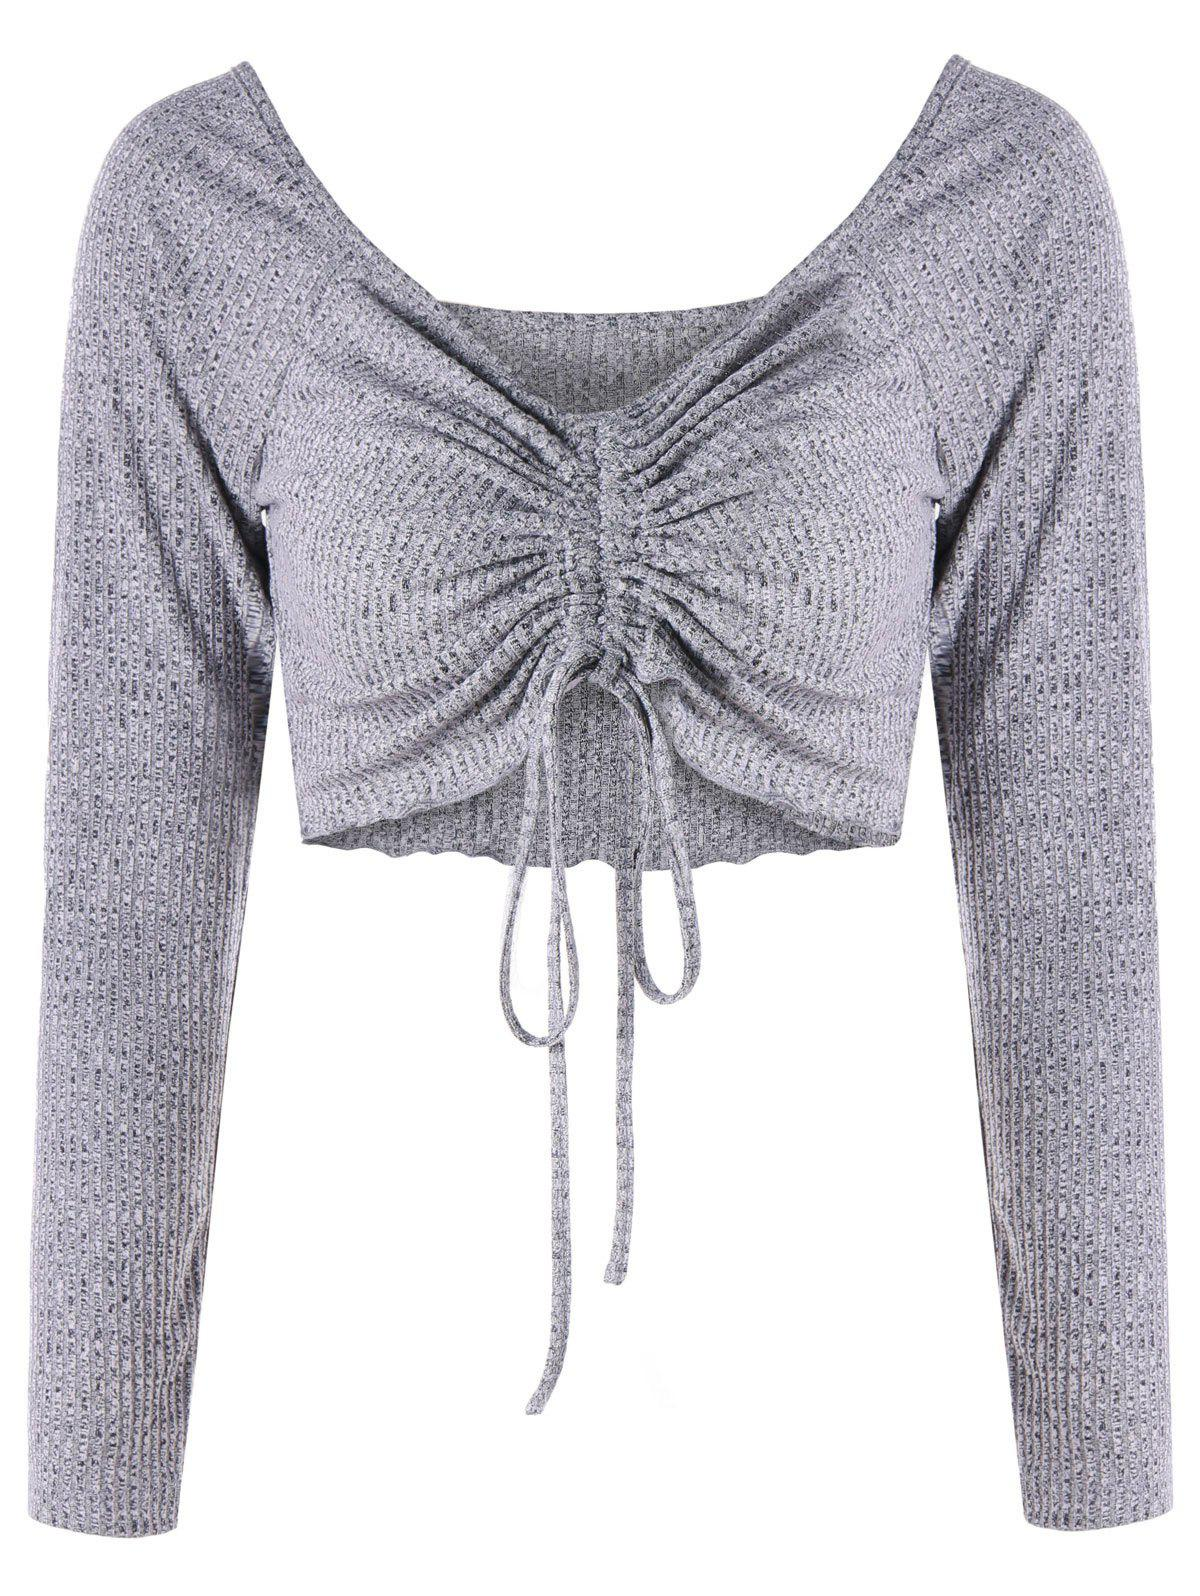 Low Cut Empire Waist Cropped Top - GRAY 2XL